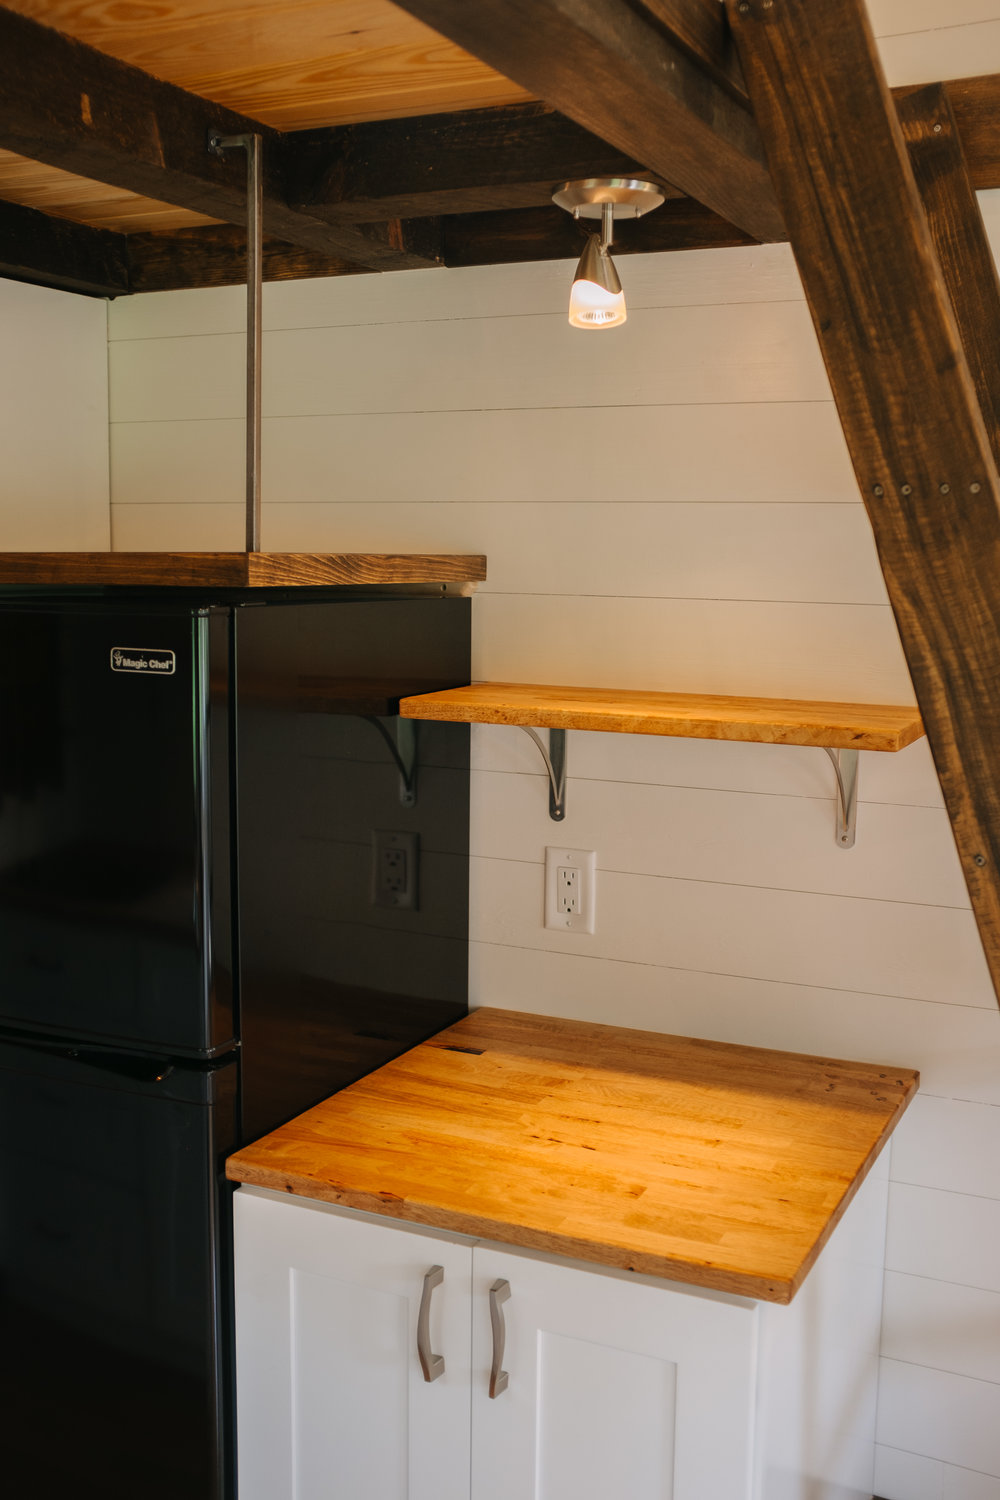 The Acadia by Wind River Tiny Homes - tiny house, ship lap, shaker cabinets, open shelving, loft ladder